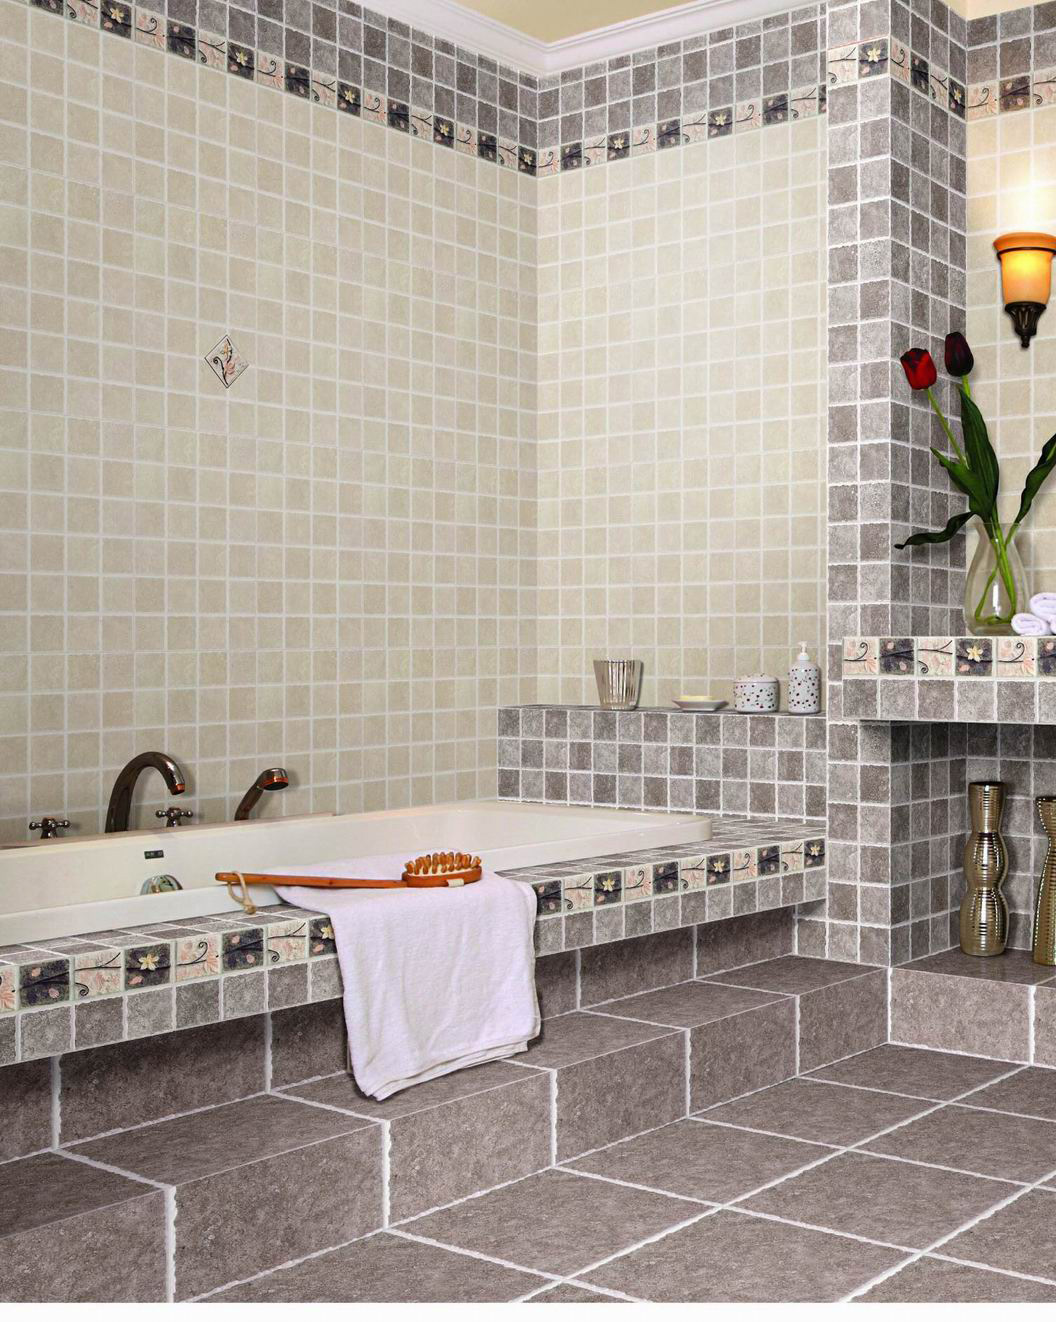 ... 31 Bathroom Tile Indoor Floor Ceramic 52441 6202839 Part 28